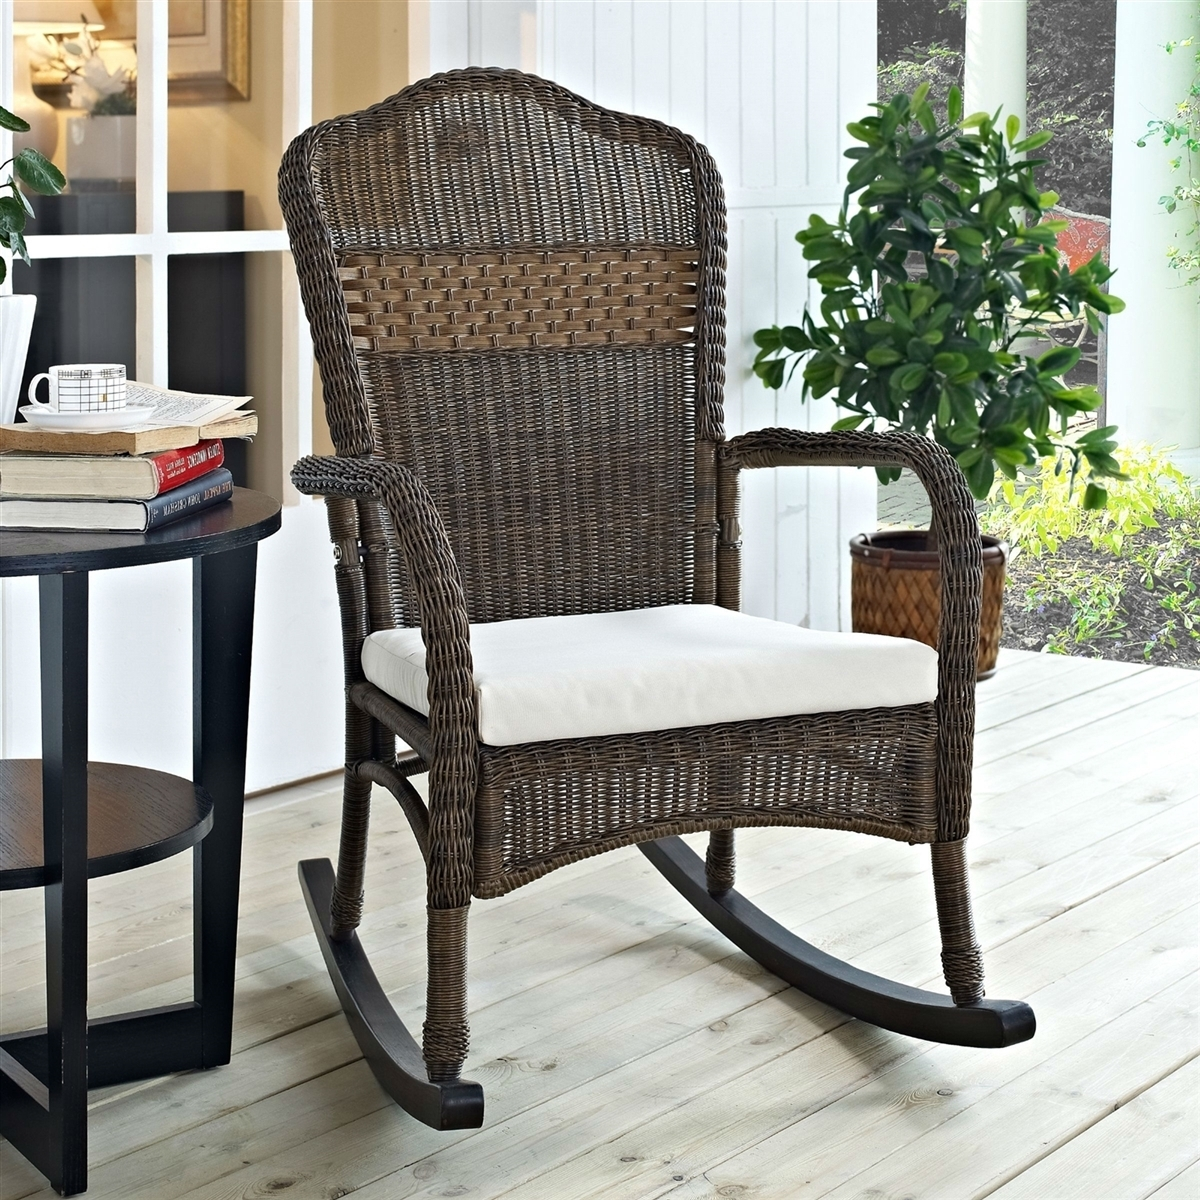 Inspiration about Wicker Patio Furniture Rocking Chair Mocha With Beige Cushion Pertaining To Resin Wicker Patio Rocking Chairs (#6 of 15)